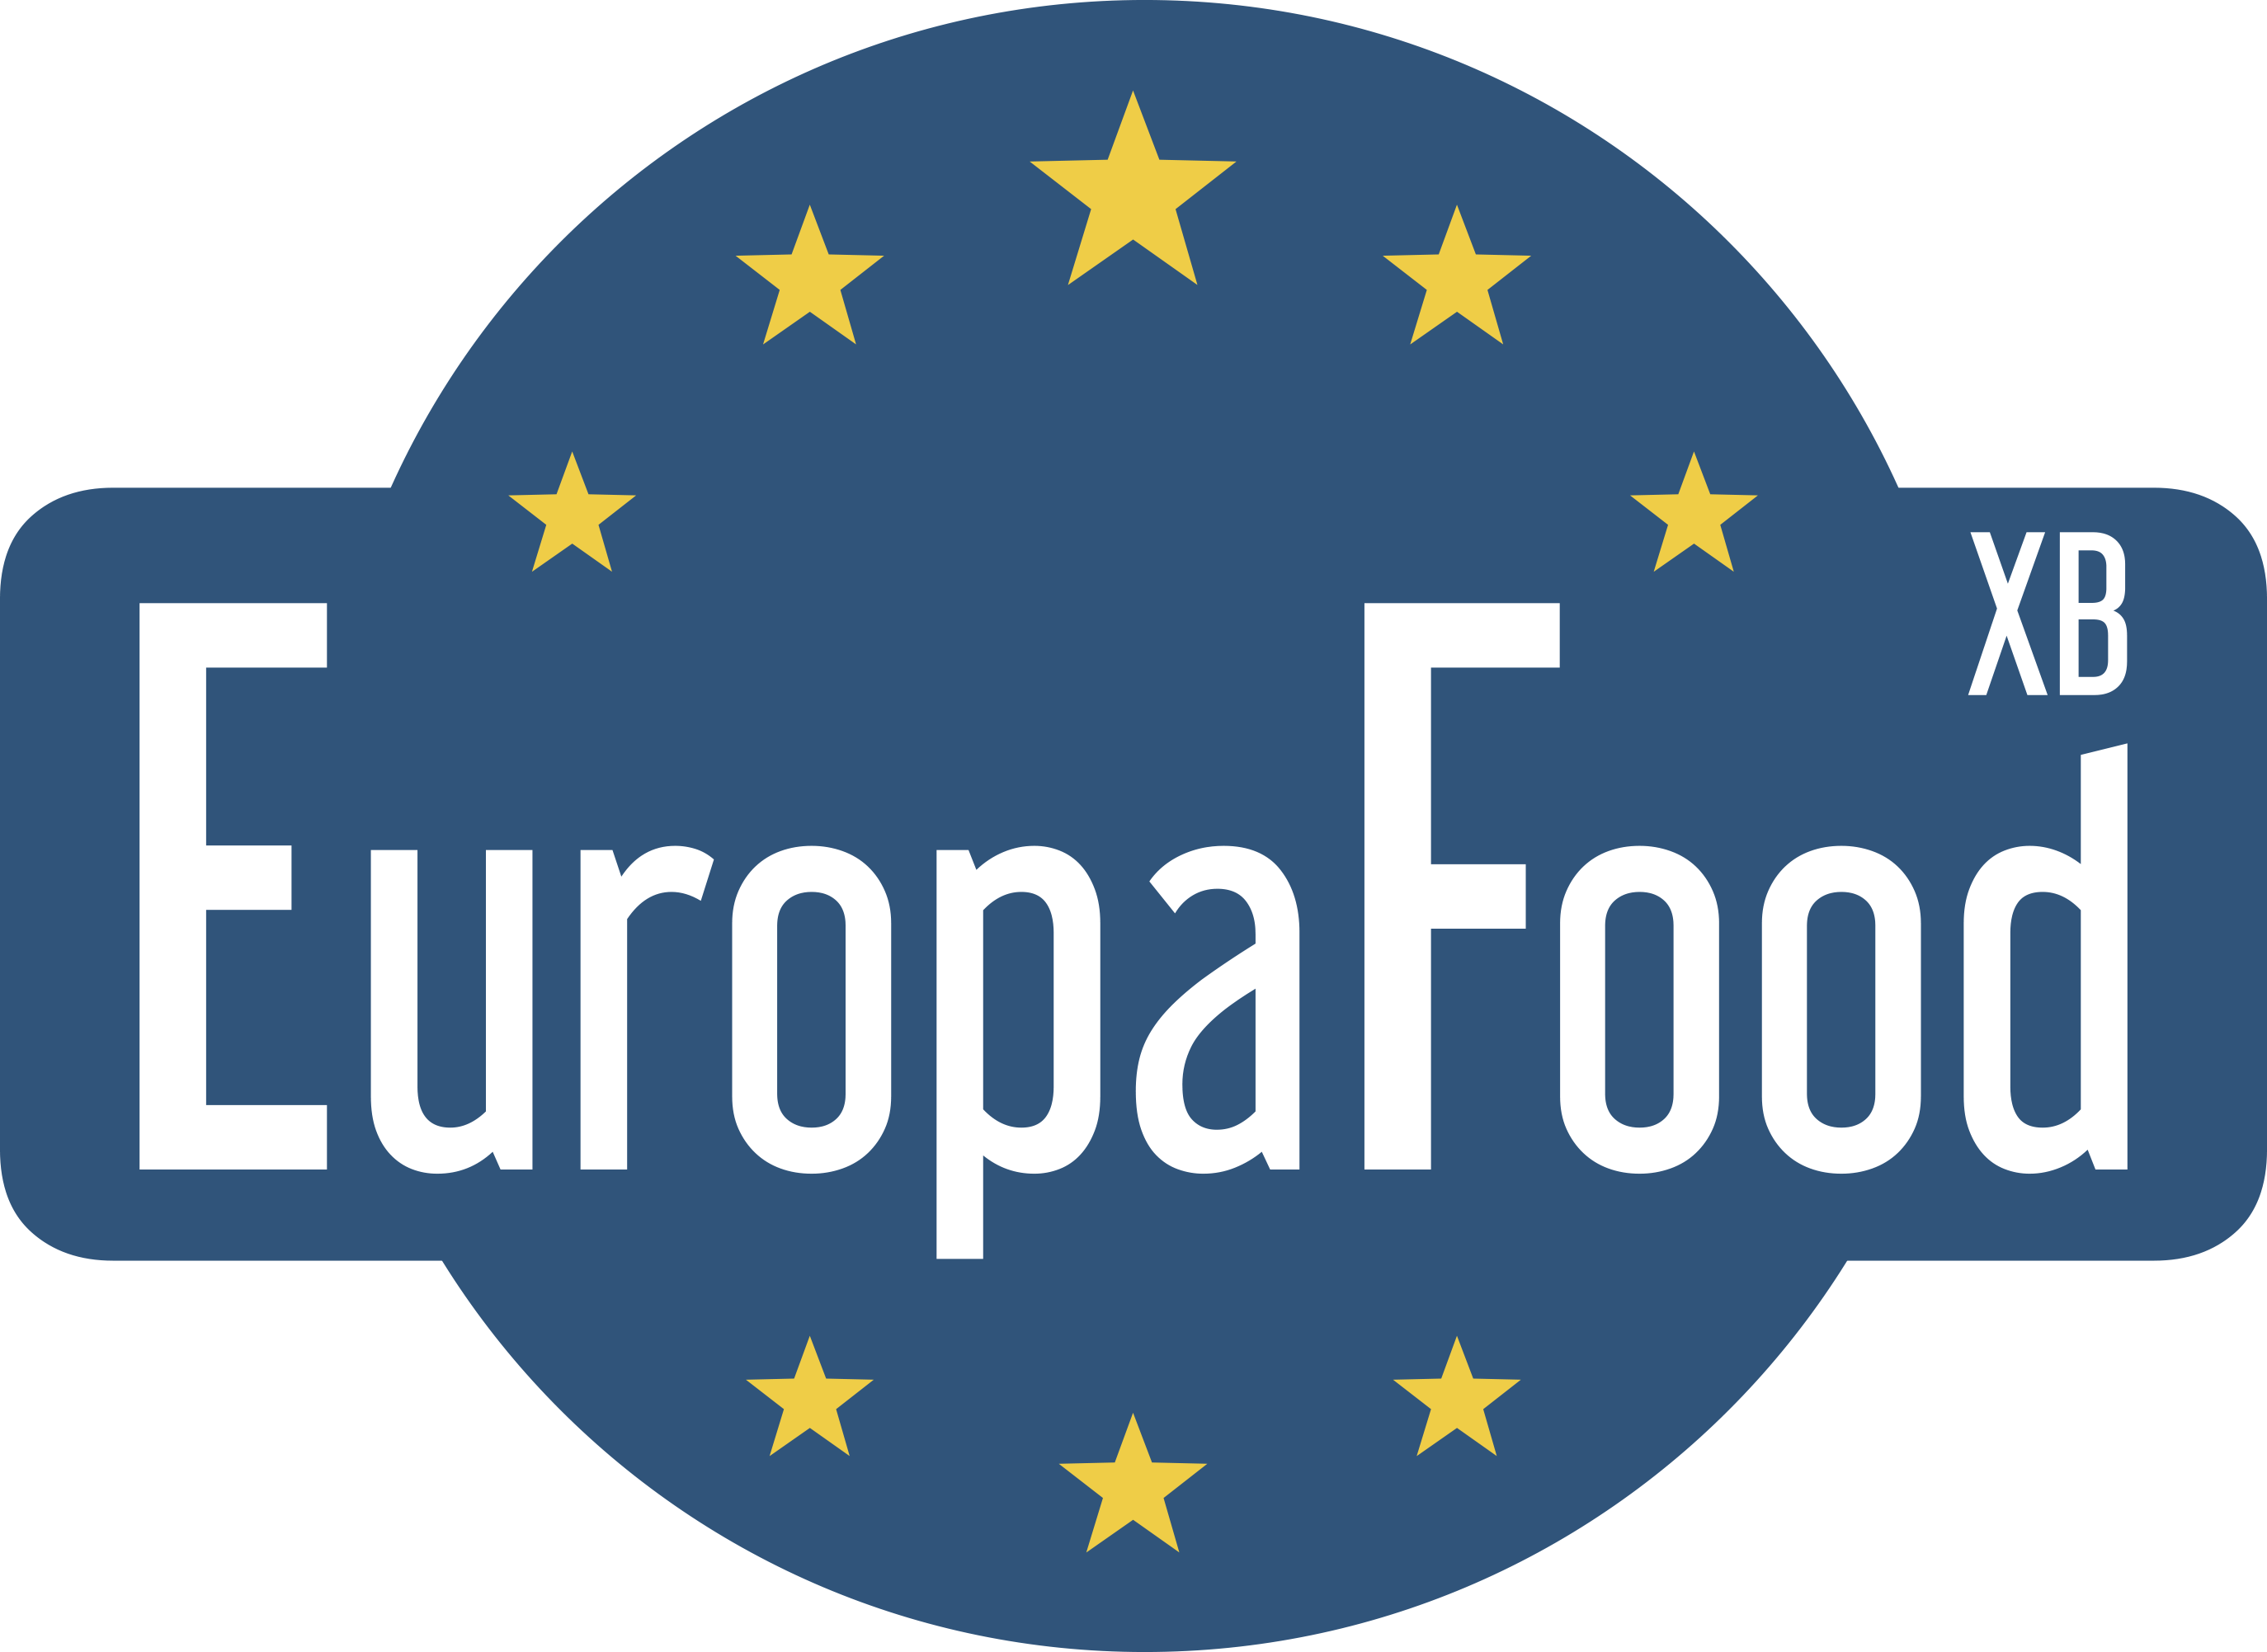 Food Delivery EuropaFoodXB